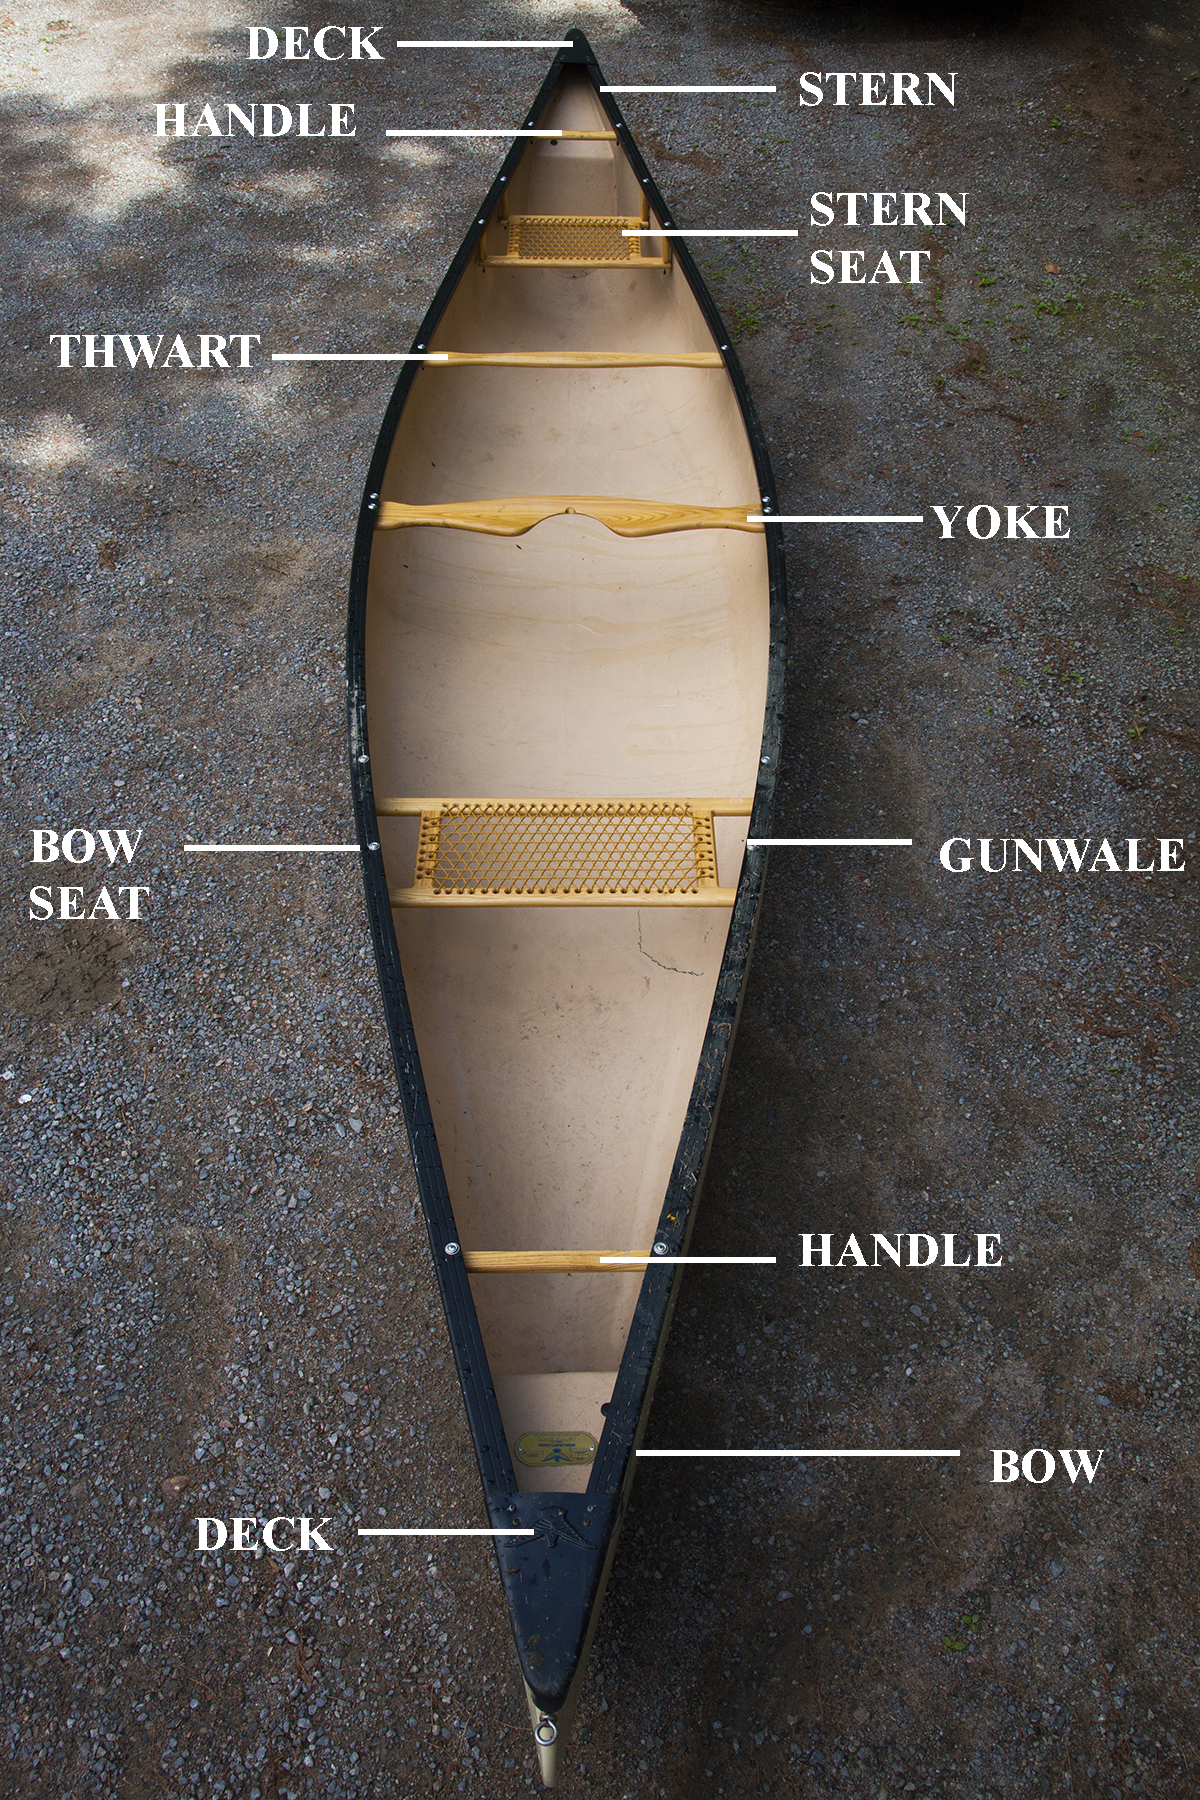 Graphic with parts of the canoe labelled